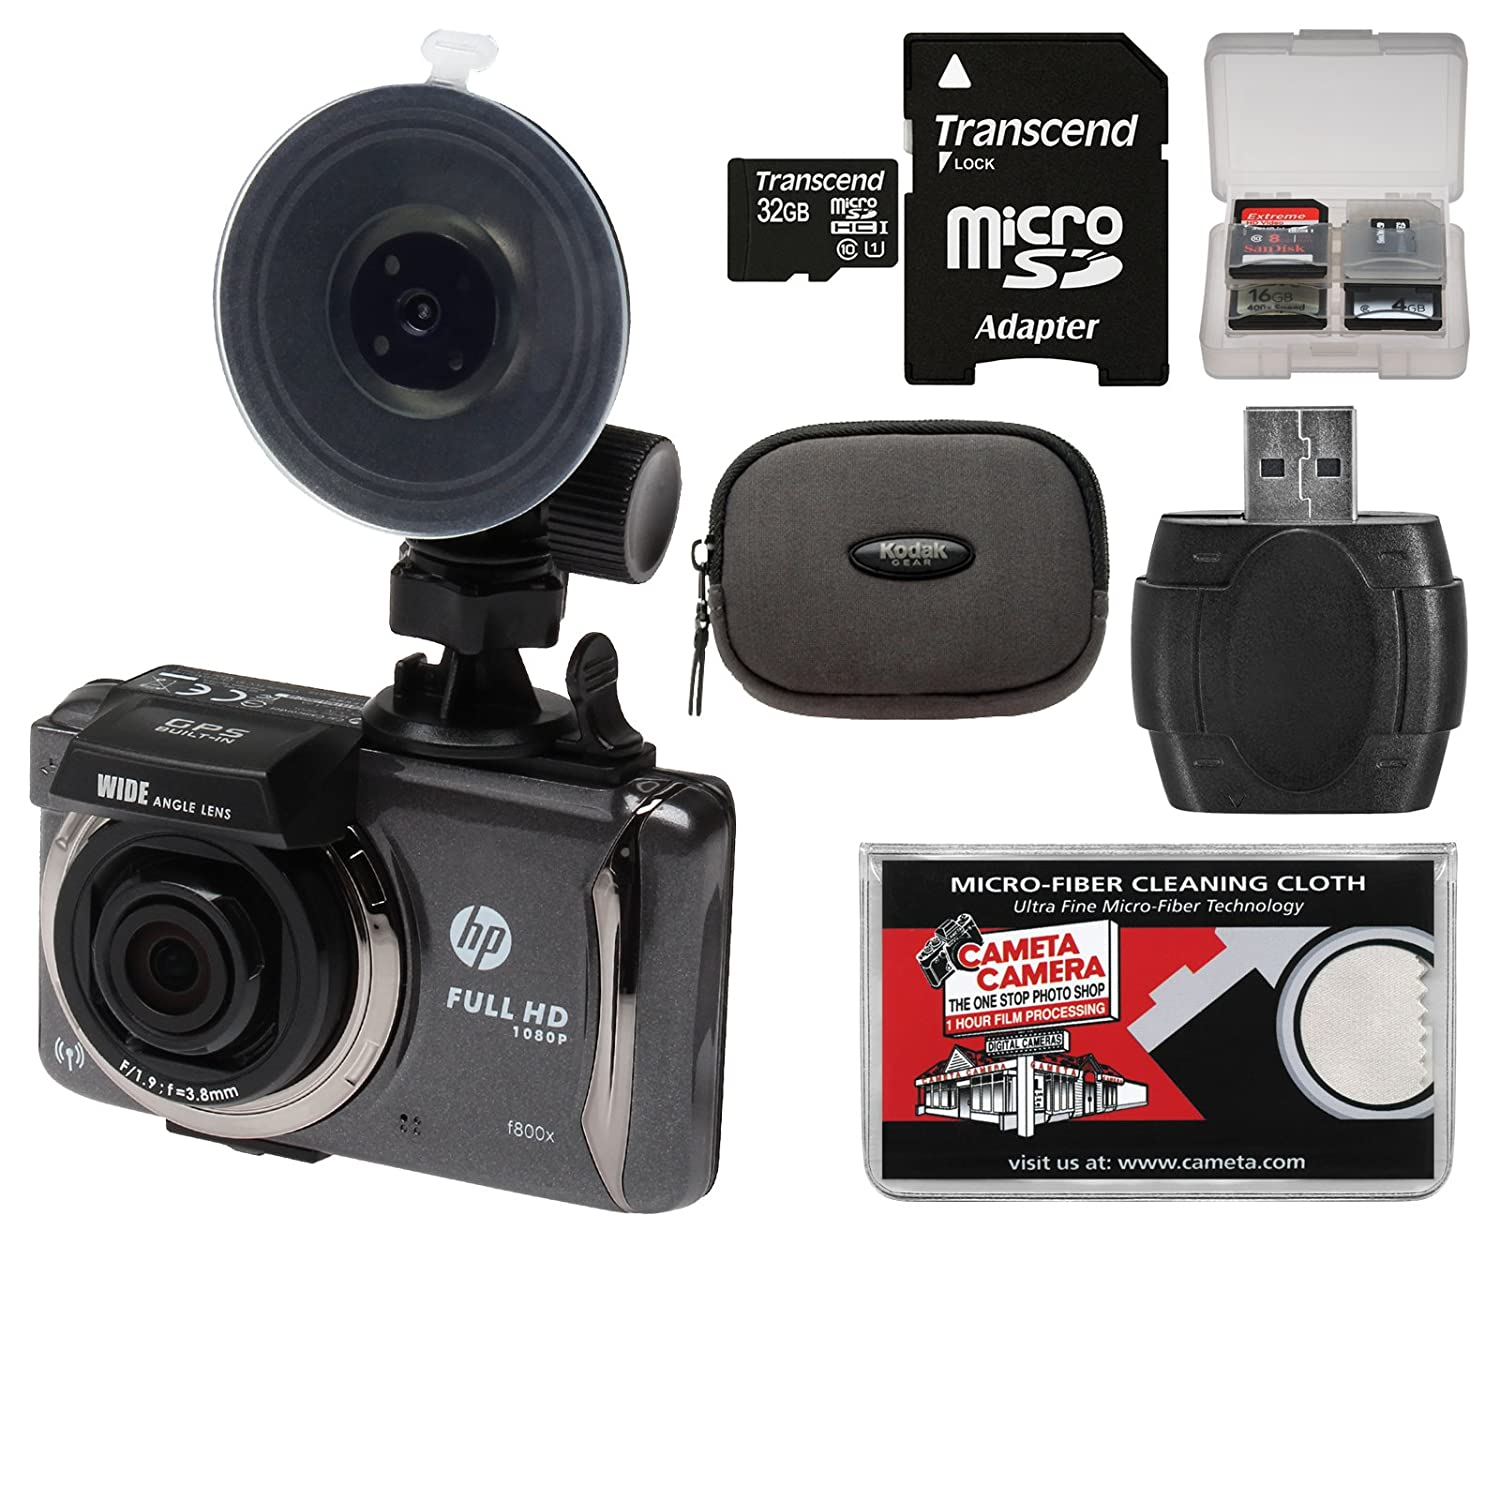 HP f800x Full HD Wi-Fi GPS Car Dashboard Video Recorder Camera with 32GB Card + Case + Kit